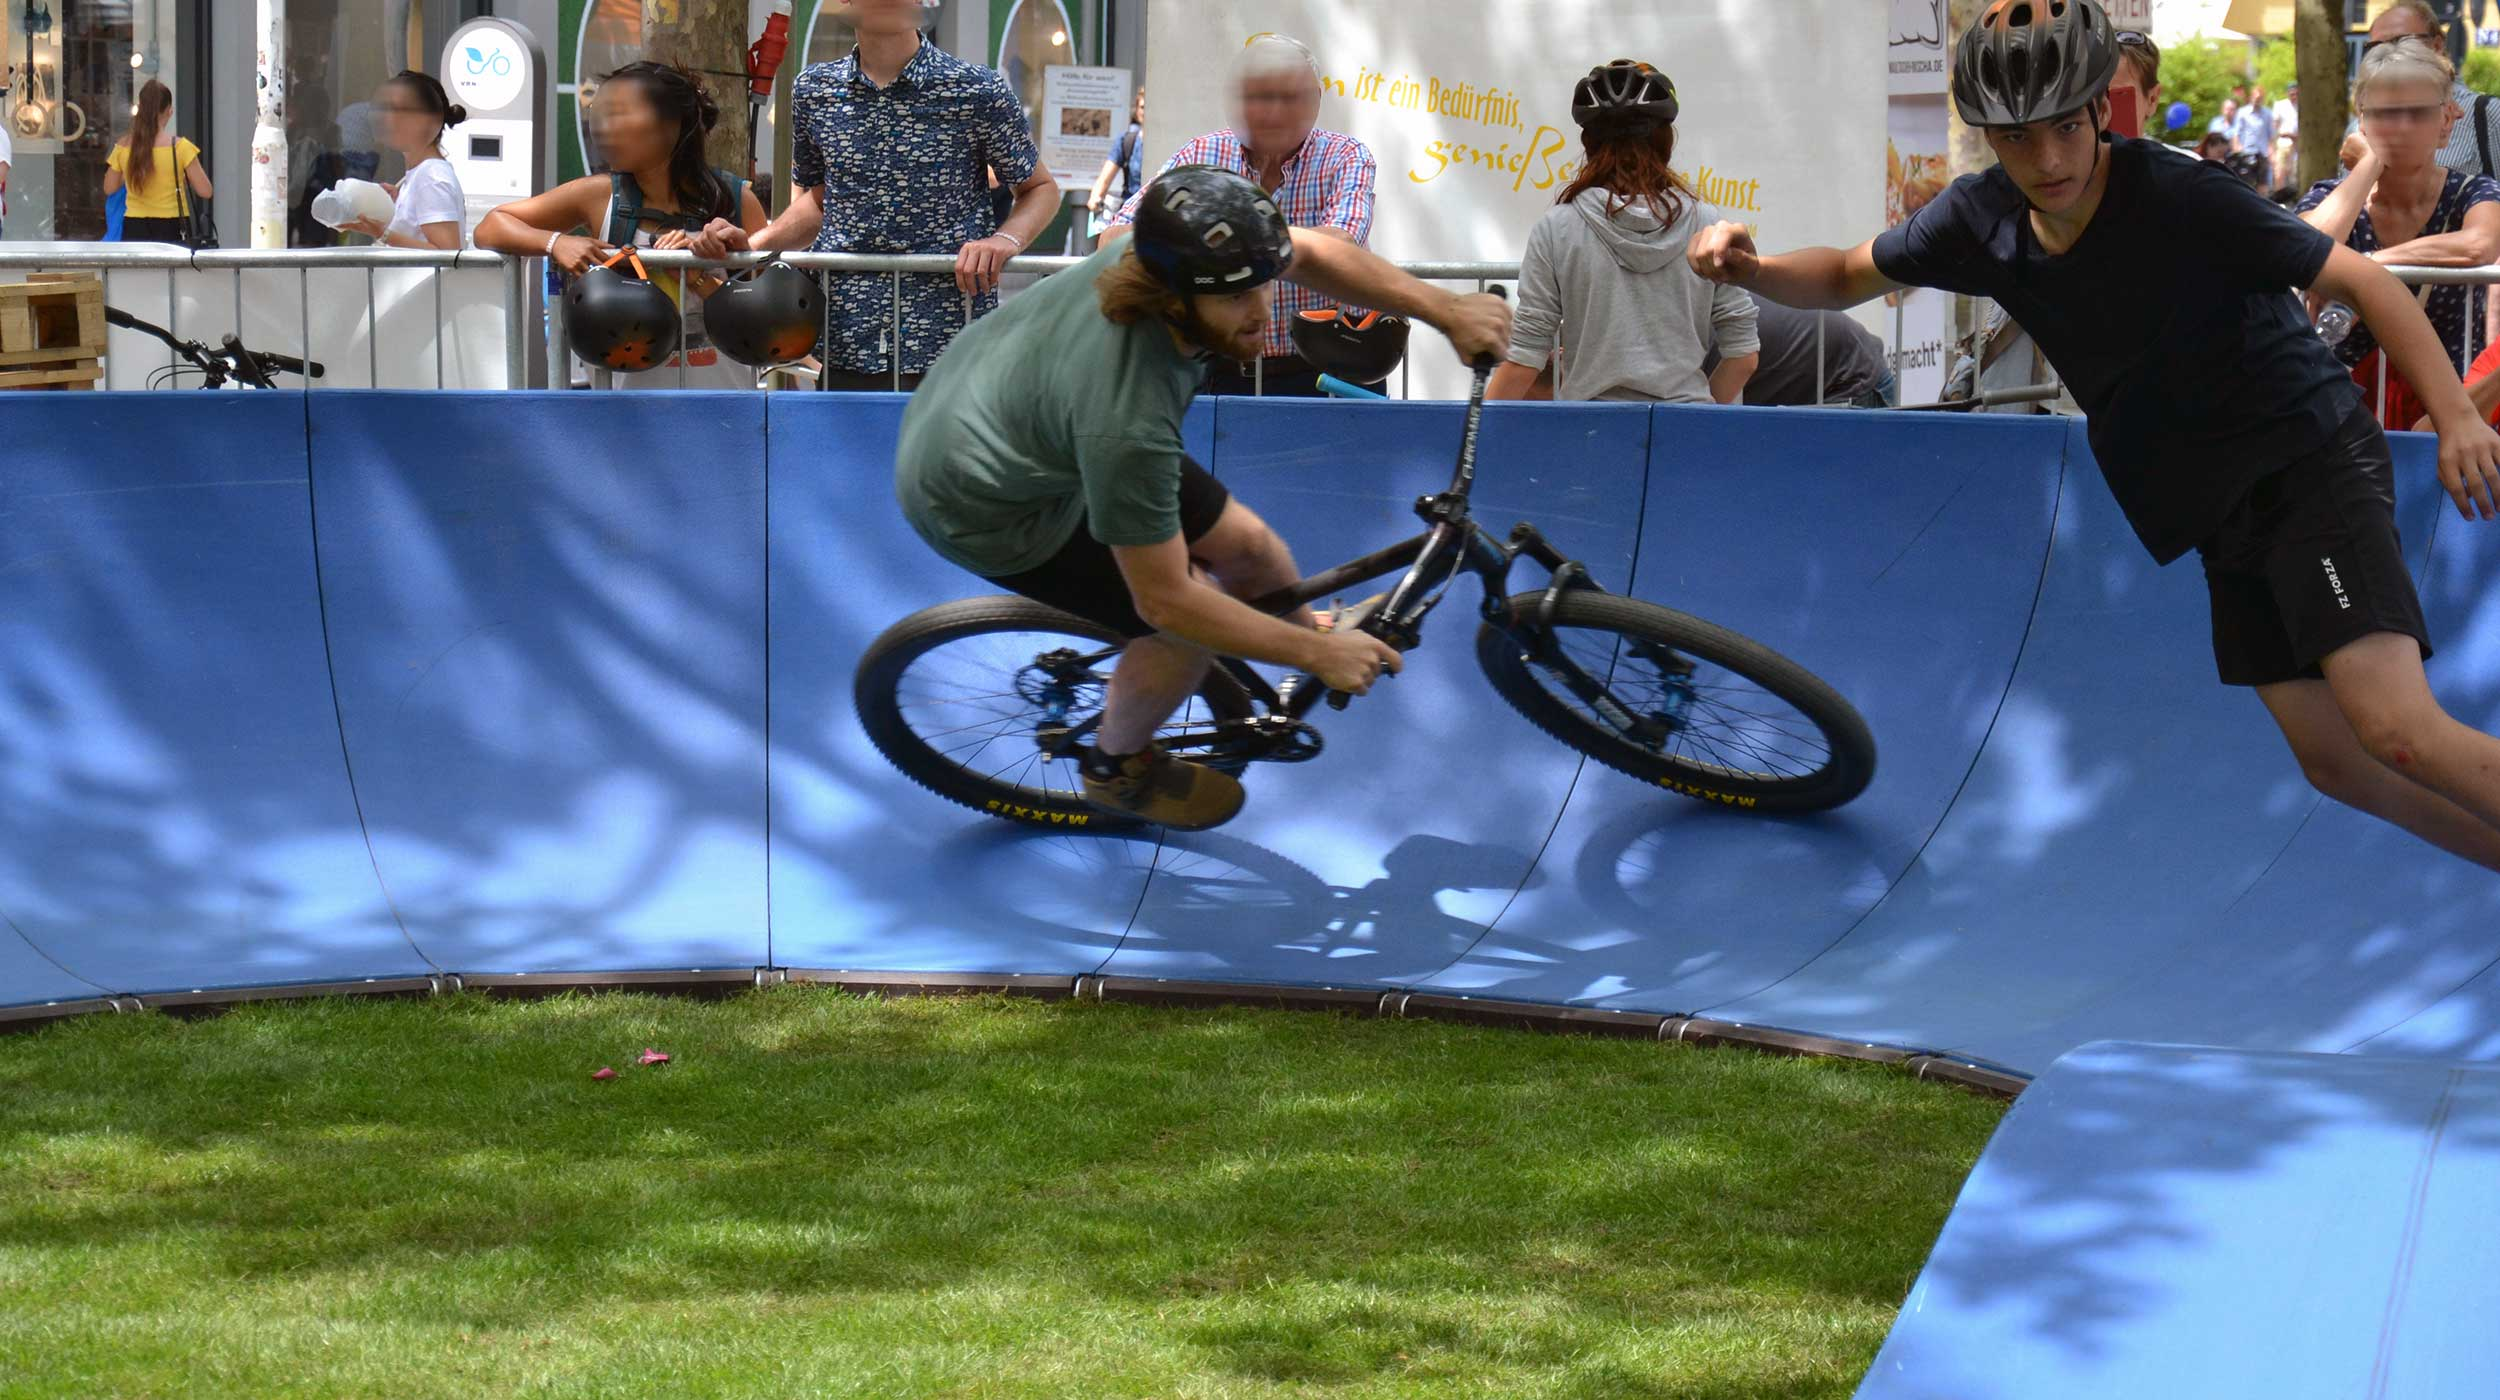 dcm-pumptrack-pic-0016